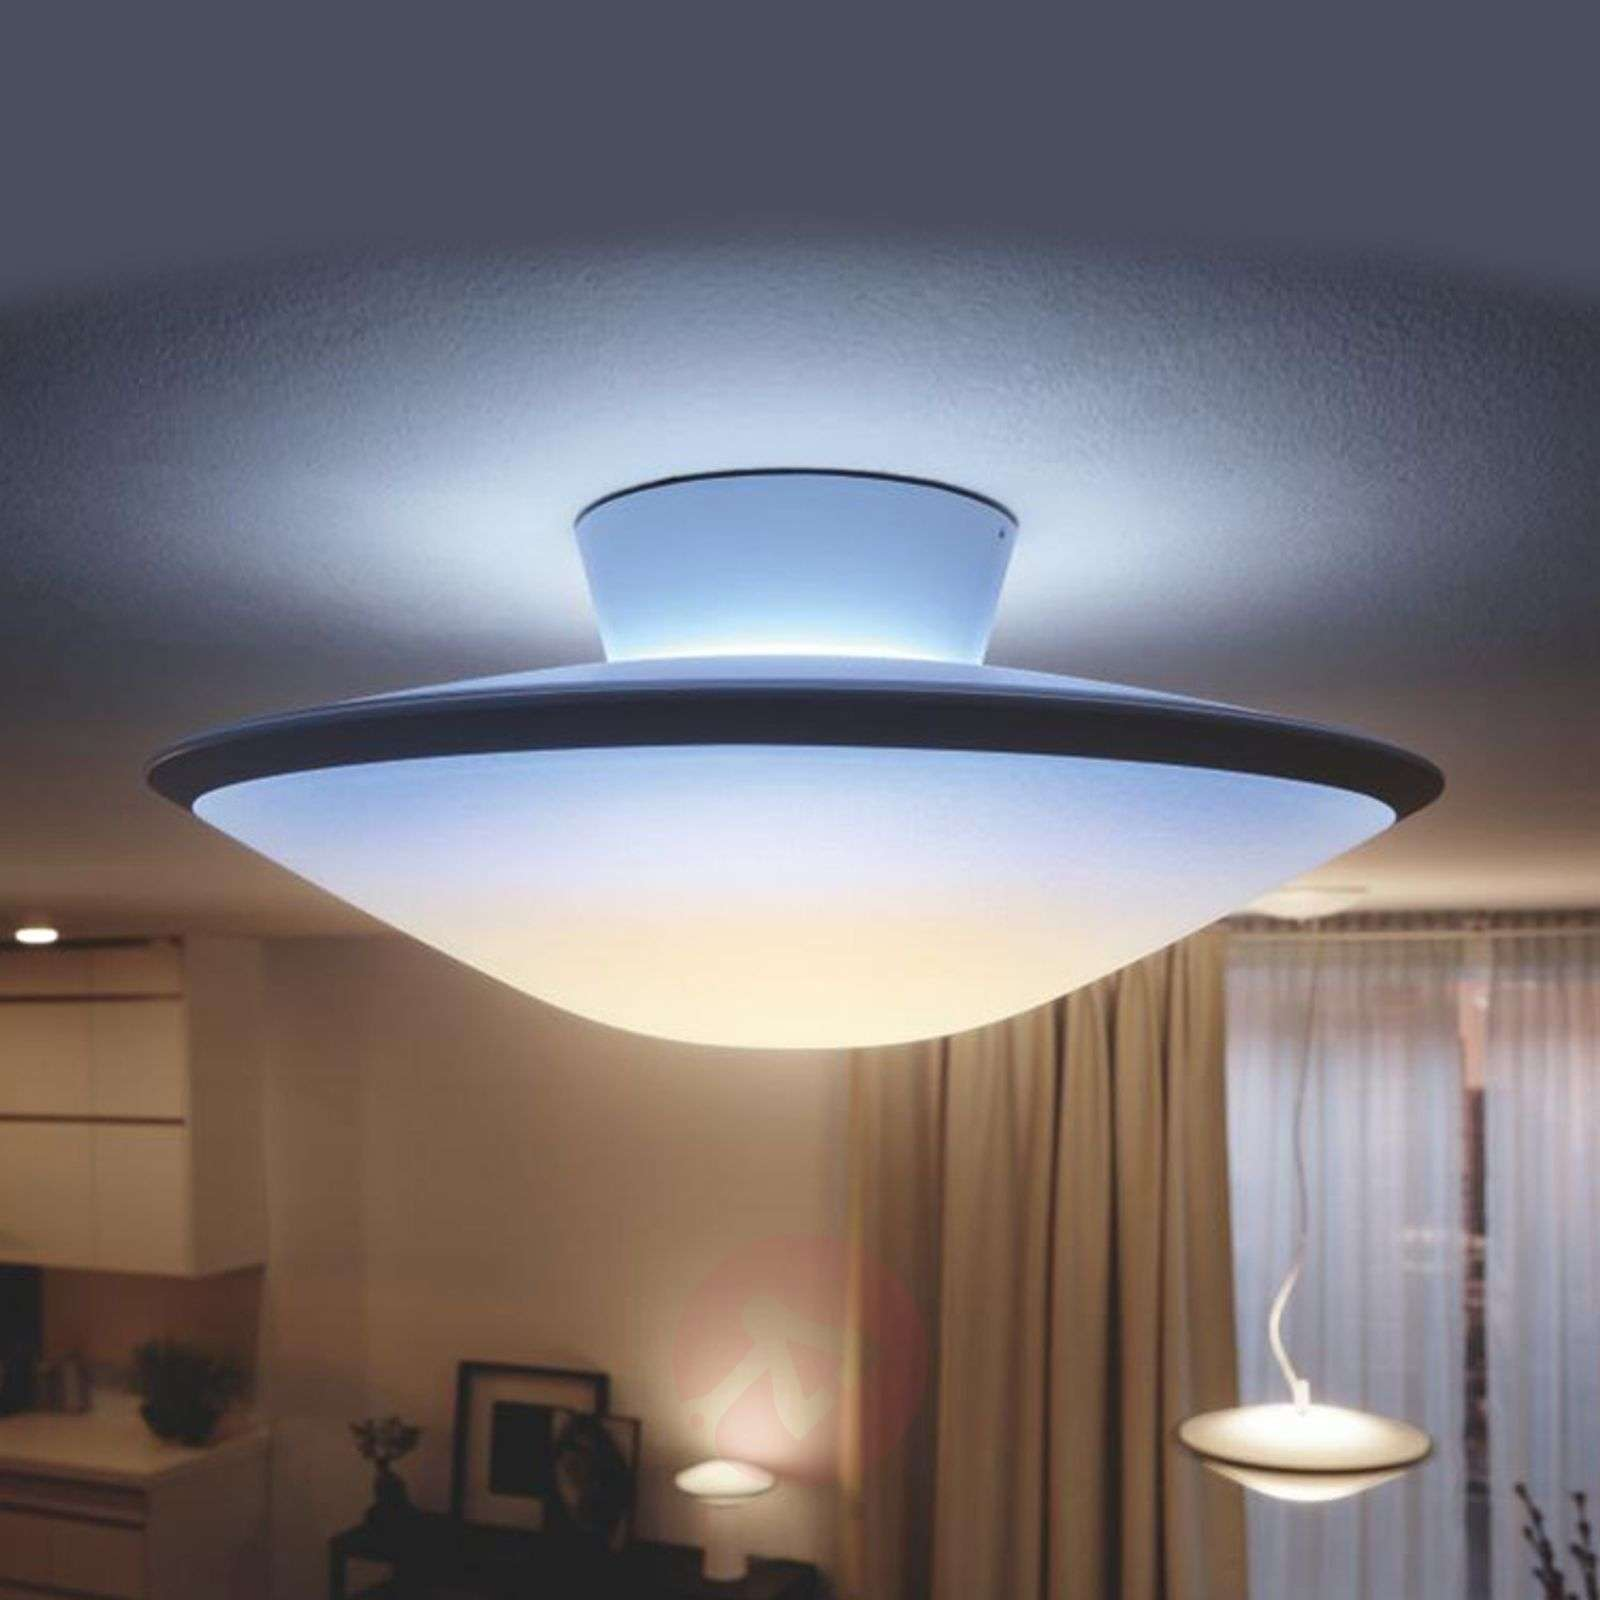 Plafoniere Ufficio Philips : Acquista plafoniera philips hue phoenix con led lampade.it